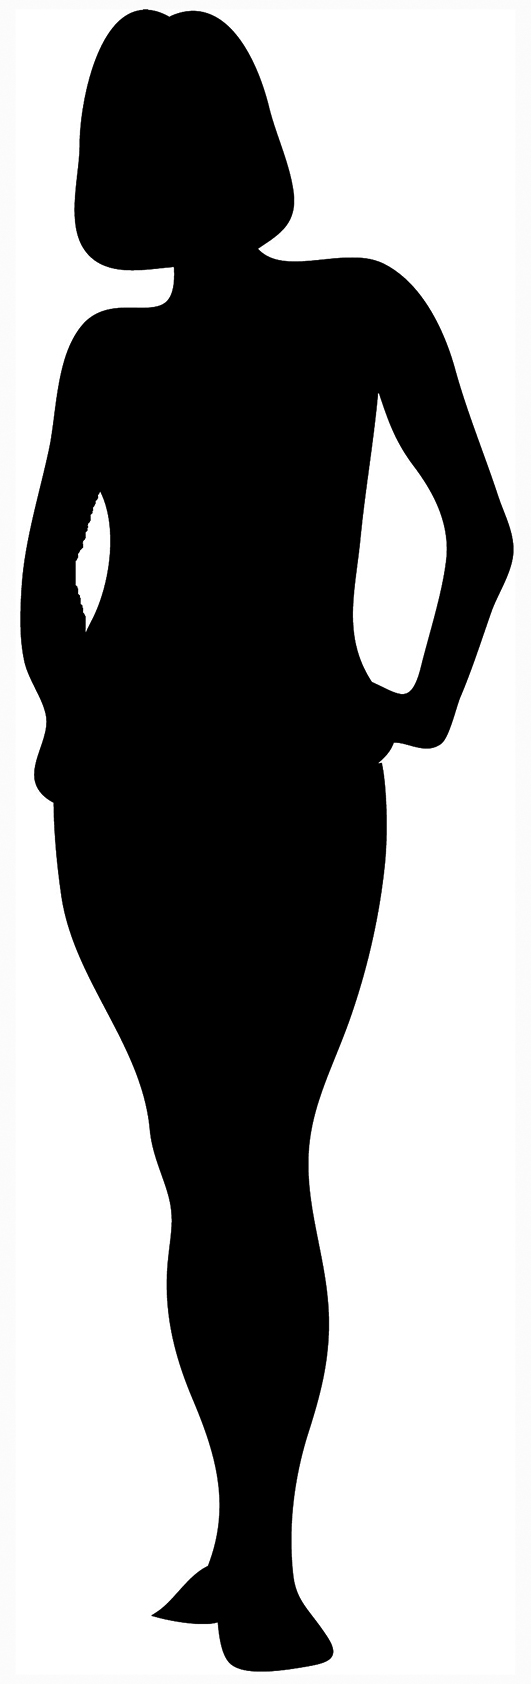 531x1684 Male And Female Silhouette Clipart